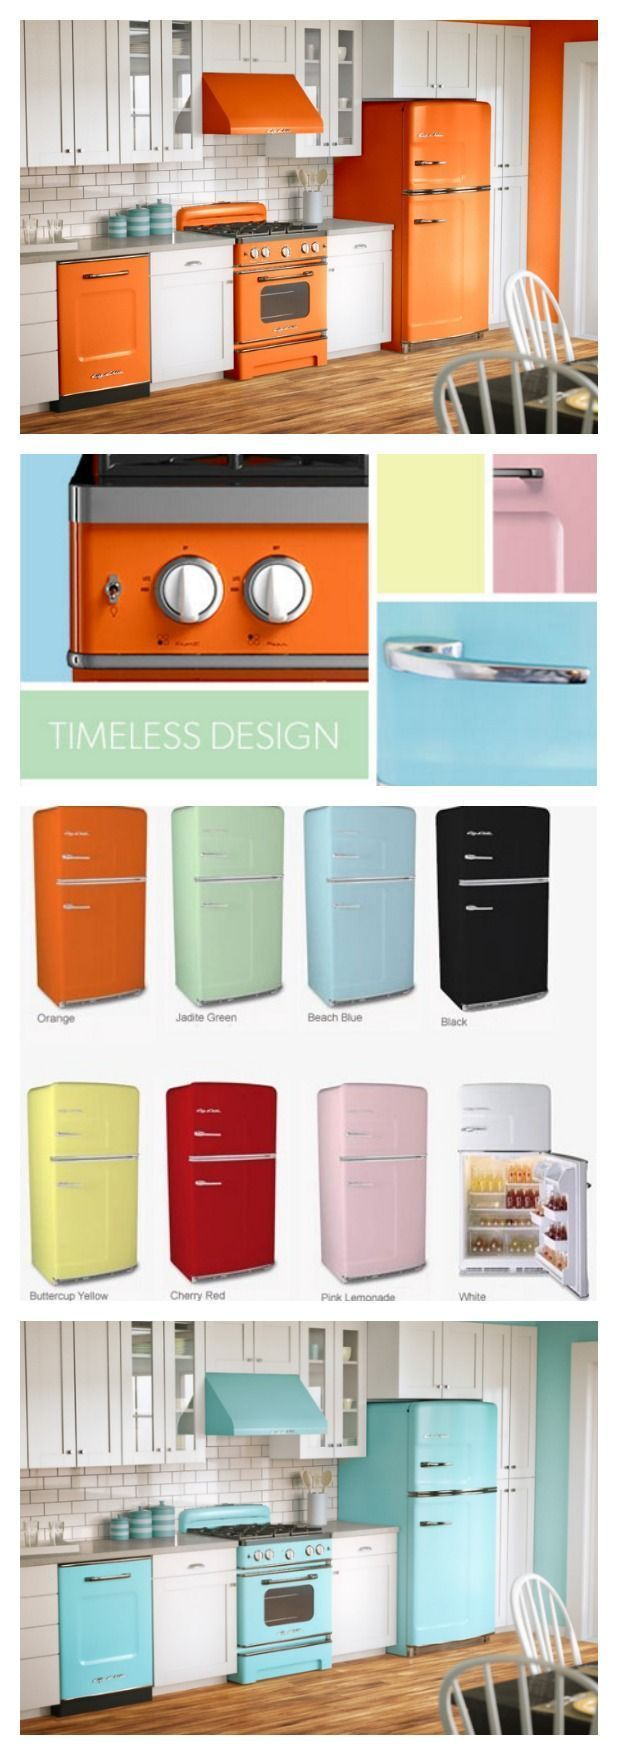 Colored Kitchen Appliances Infused With Retro Charm Are Making A Comeback